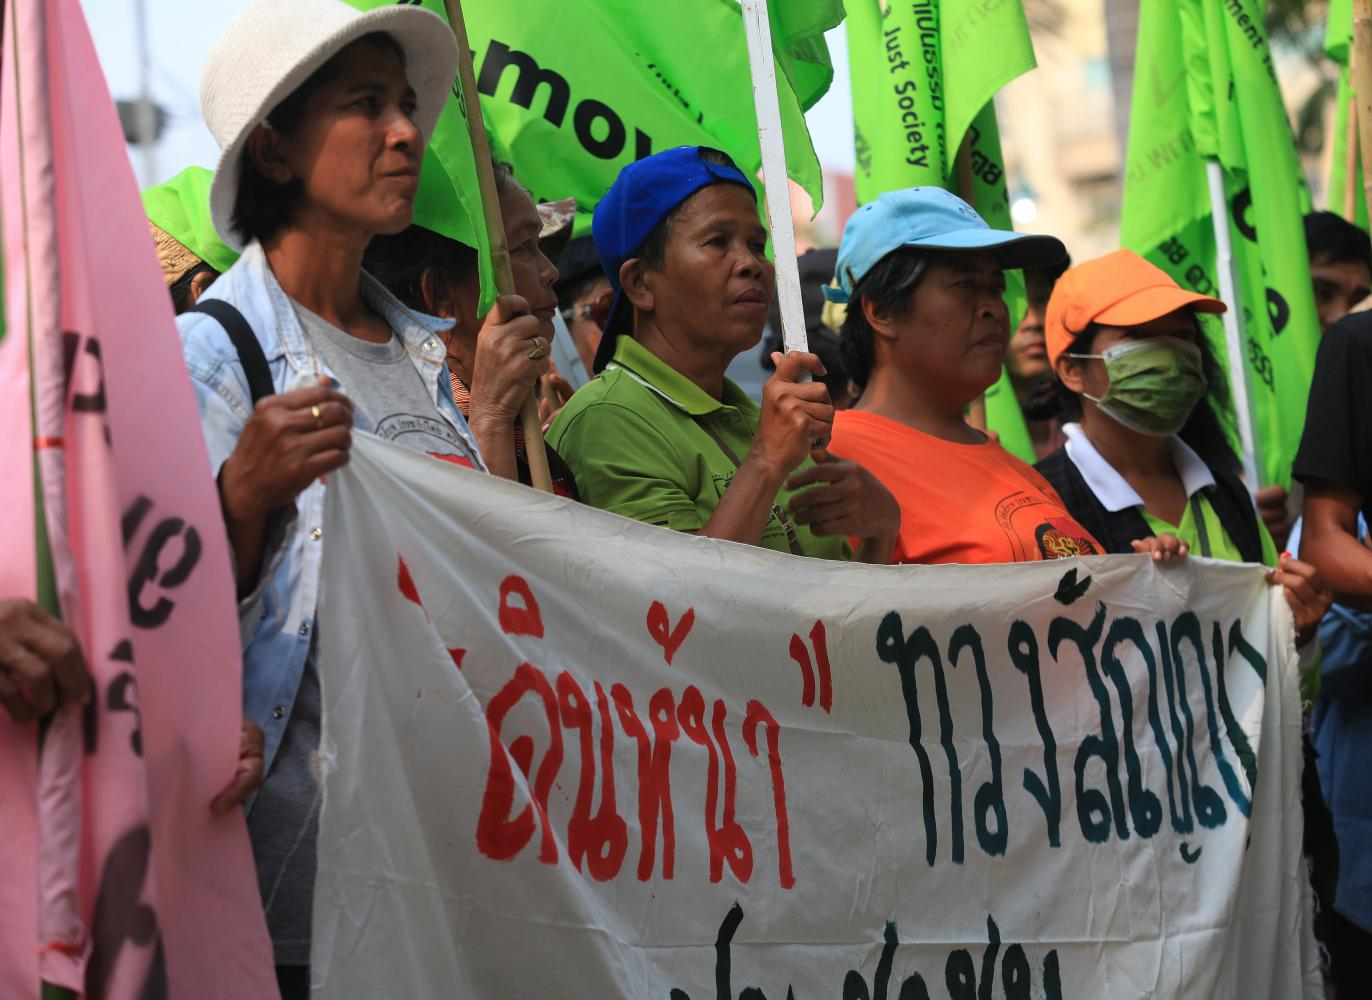 P-Move, a grassroots group which campaigns for land rights for the poor, submits a petition at Government House asking for the state to speed up land allocation to forest communities and give them rights and protection. Yet several forest dwellers face harsh punishment.Somchai Poomlard